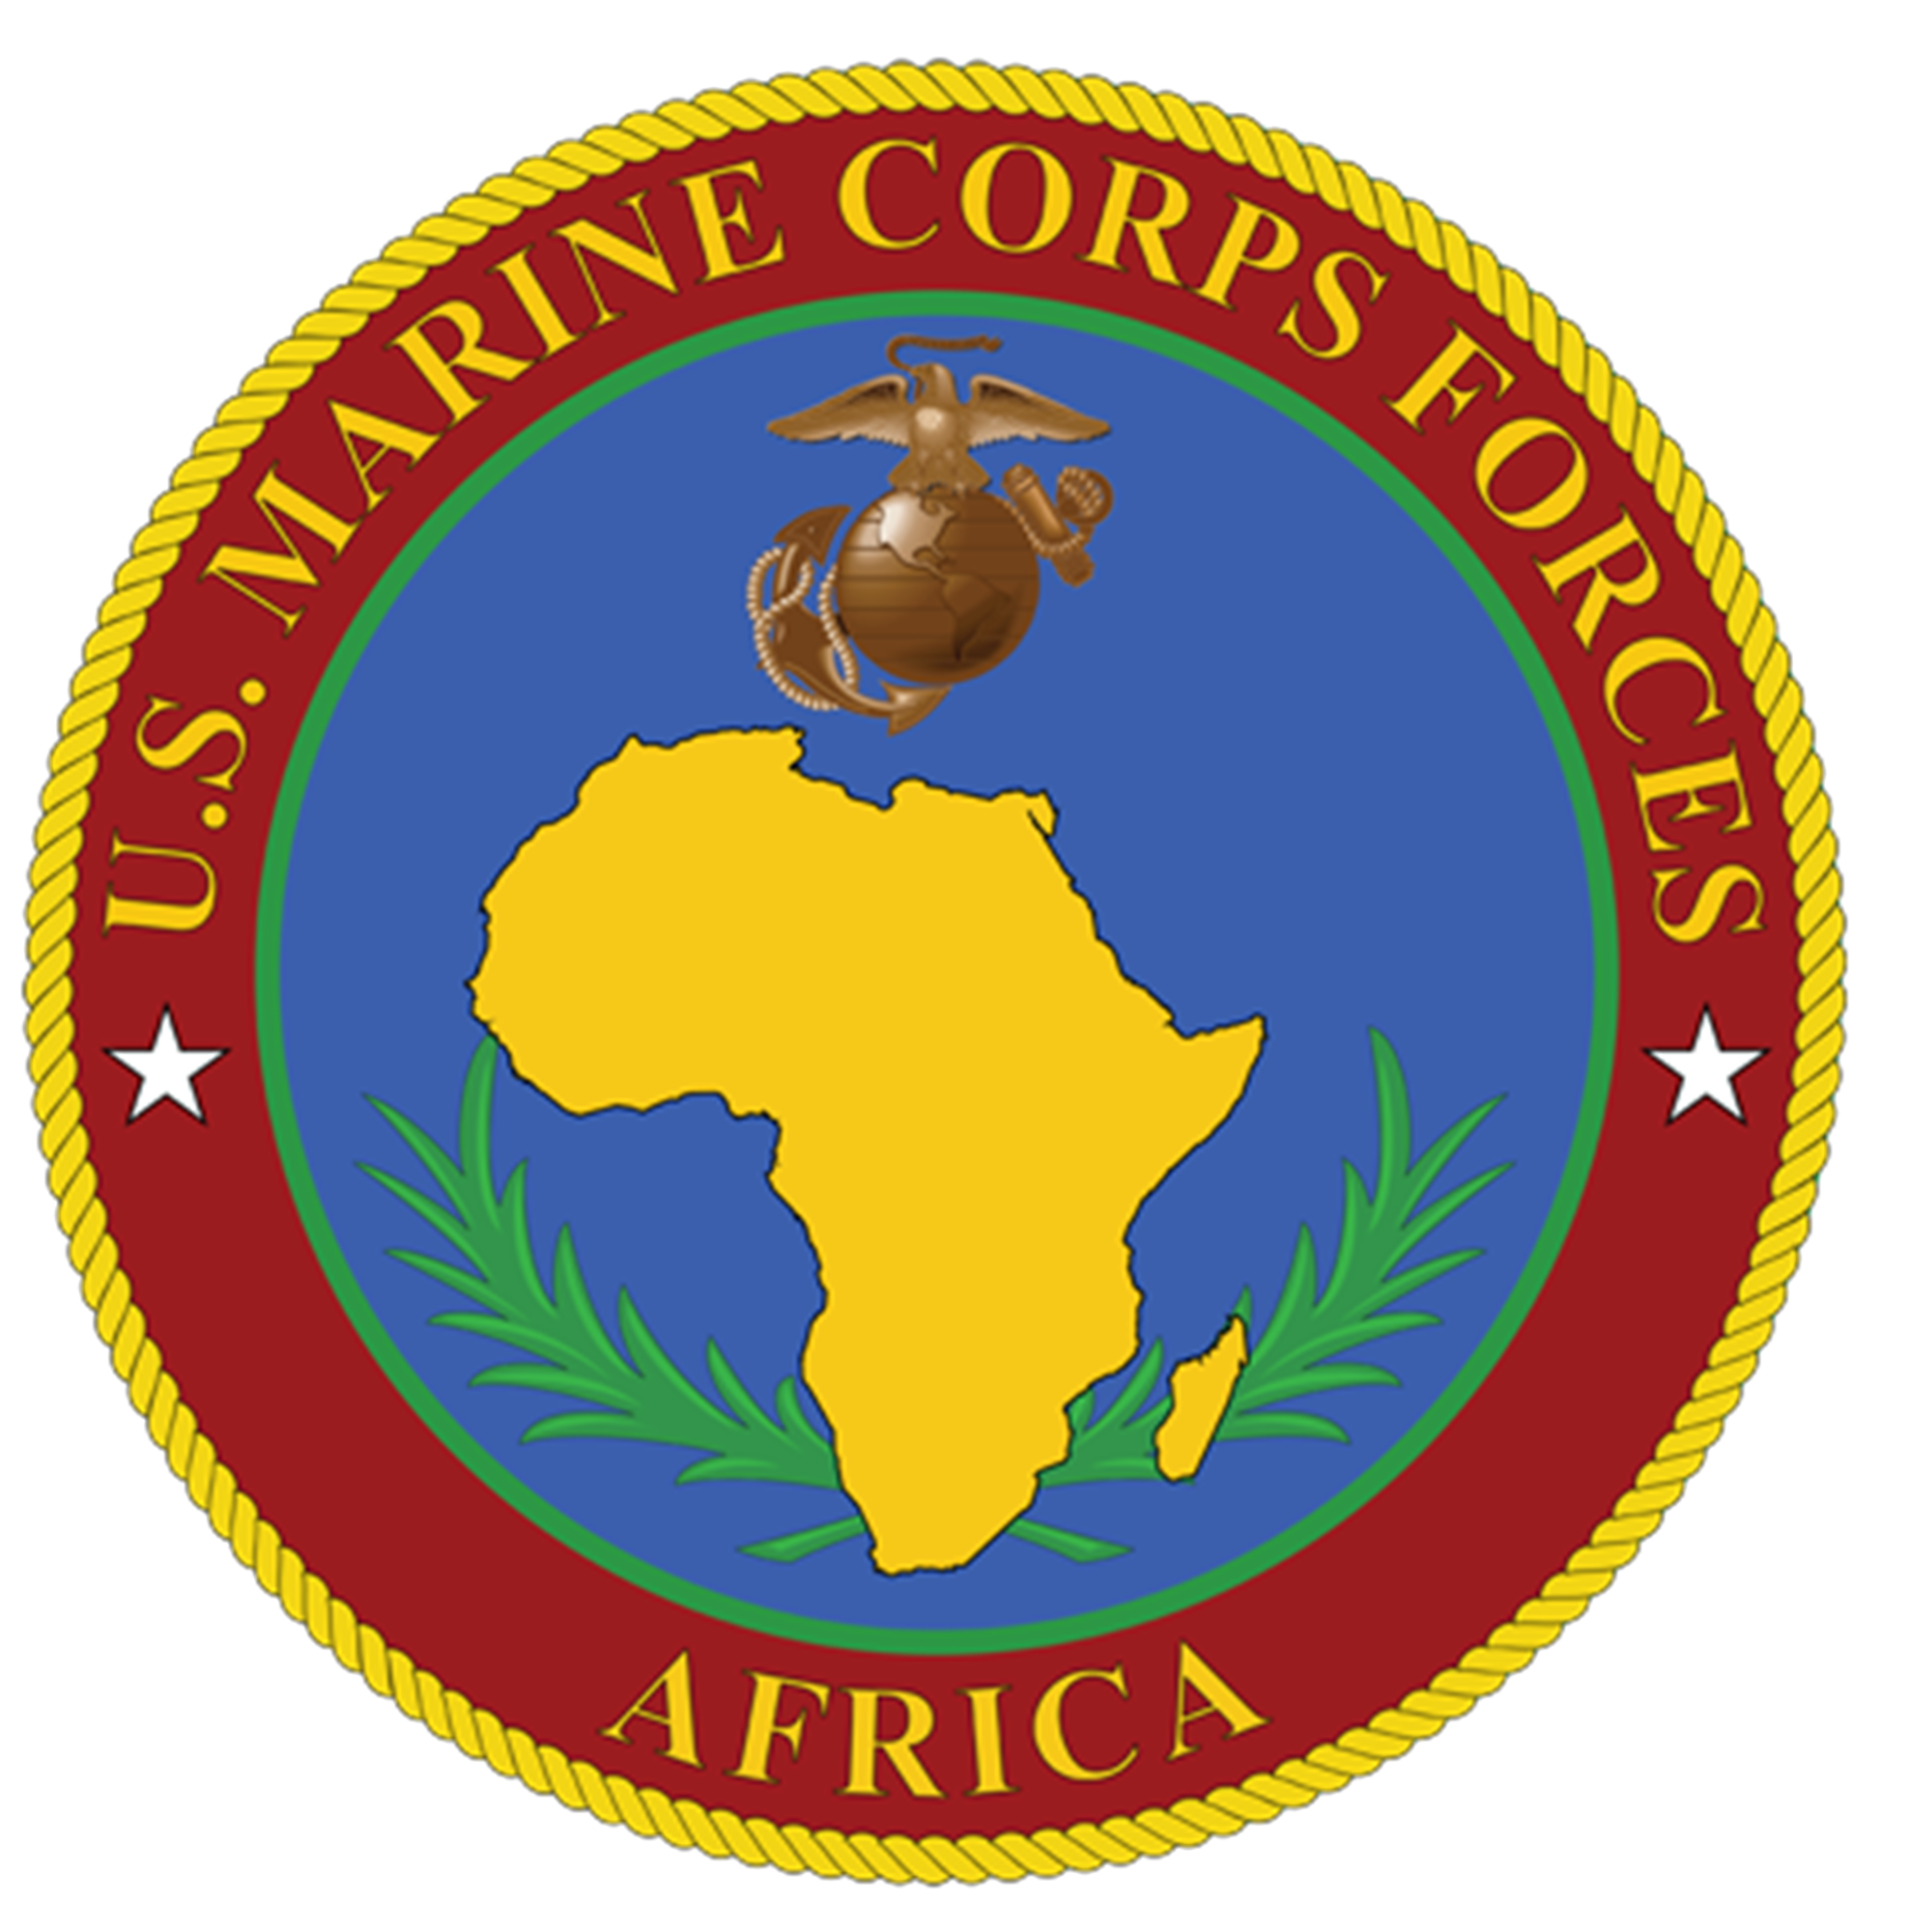 Located in Stuttgart, Germany, U.S. Marine Forces Africa (MARFORAF) conducts operations, exercises, training, and security cooperation activities throughout the African continent. Its staff is shared with U.S. Marine Corps Forces Europe.